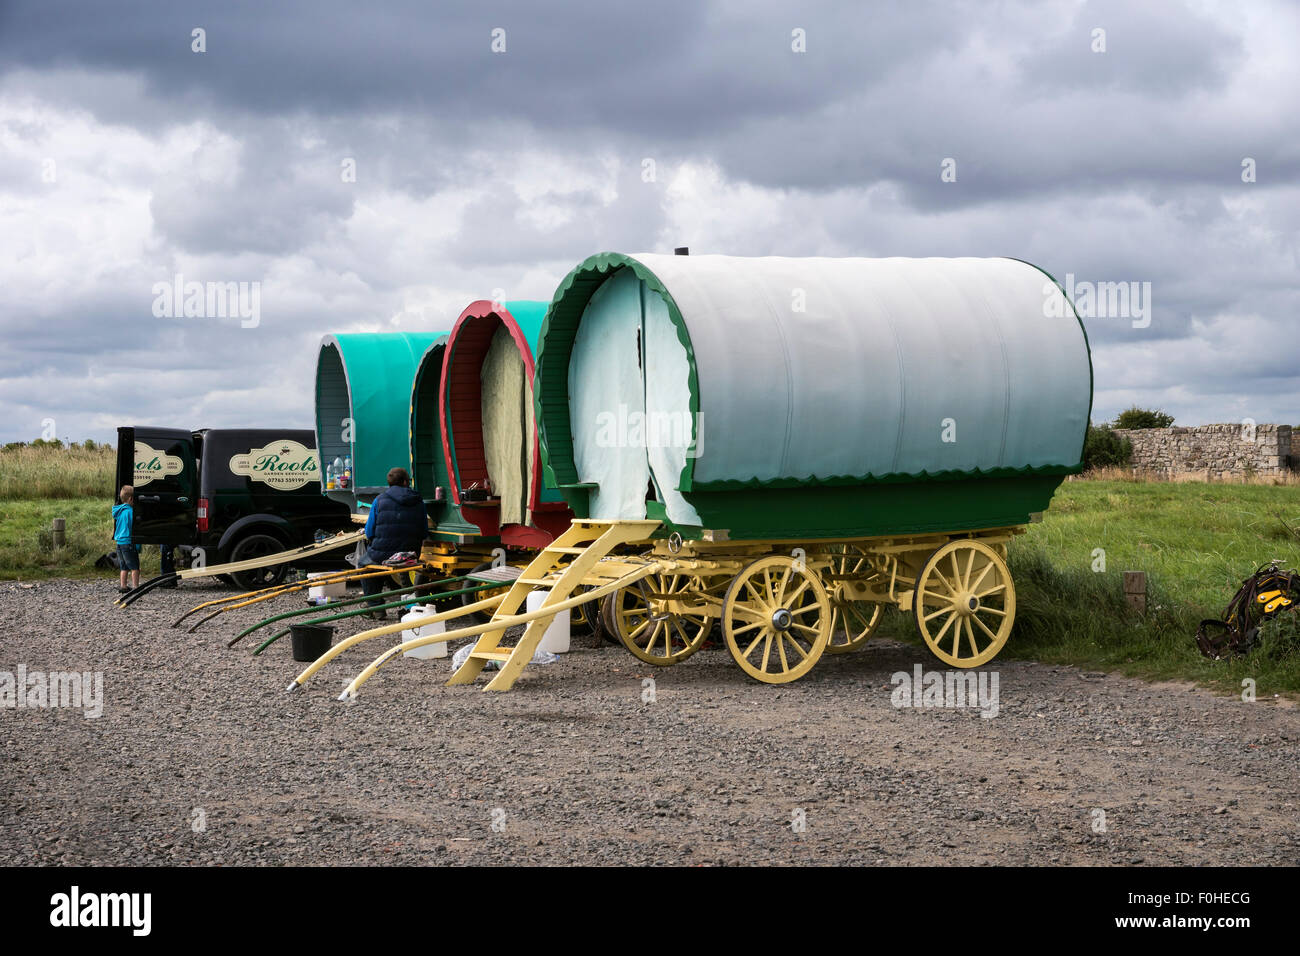 Bow top caravans temporarily camped in the car park at Boulmer in Northumberland - Stock Image